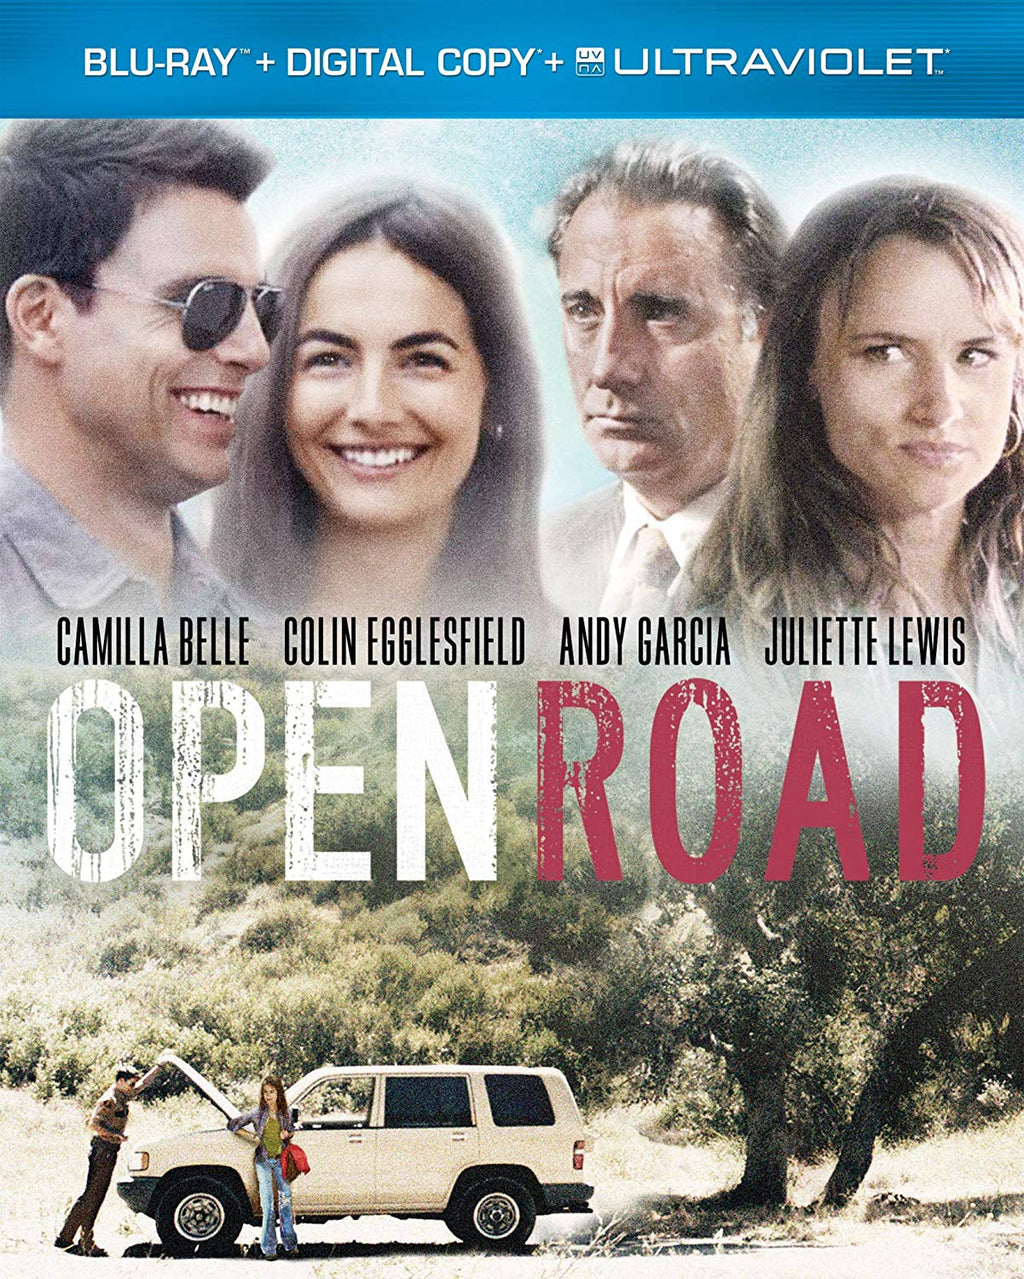 Open Road Blu-ray + Digital Copy + UV